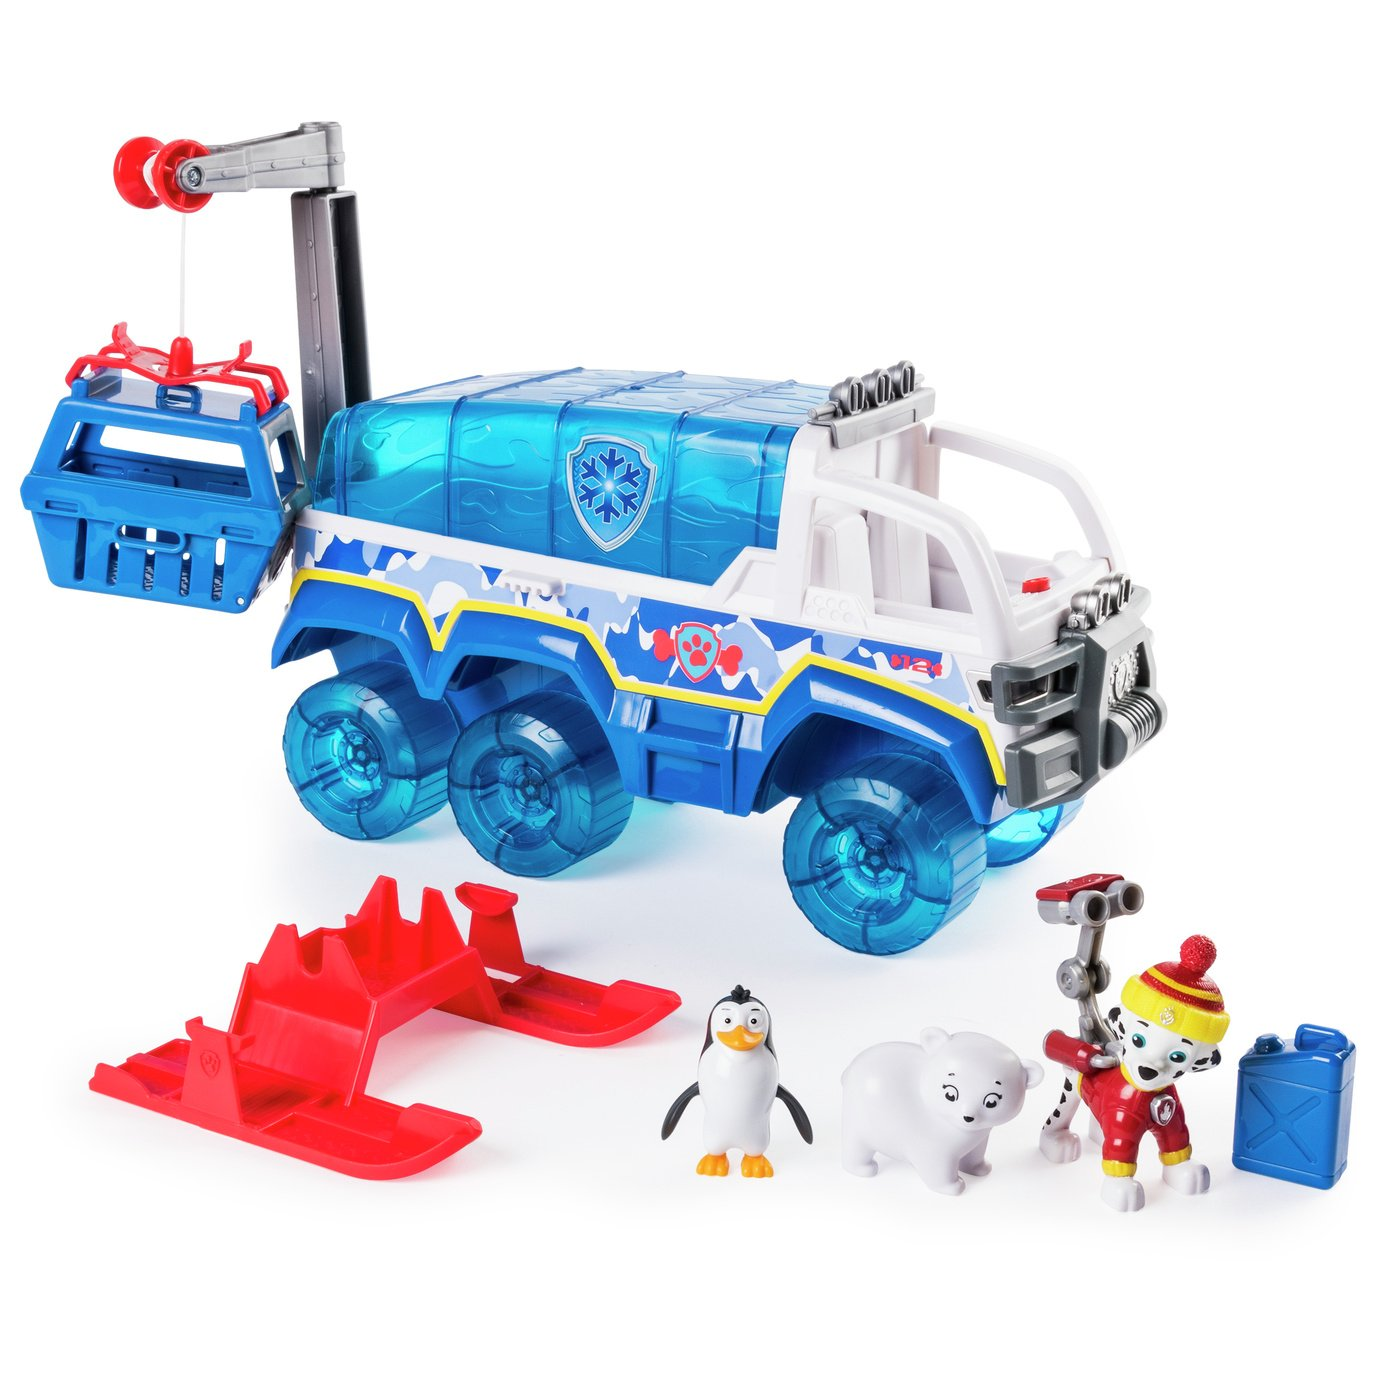 PAW Patrol Arctic Terrain Vehicle